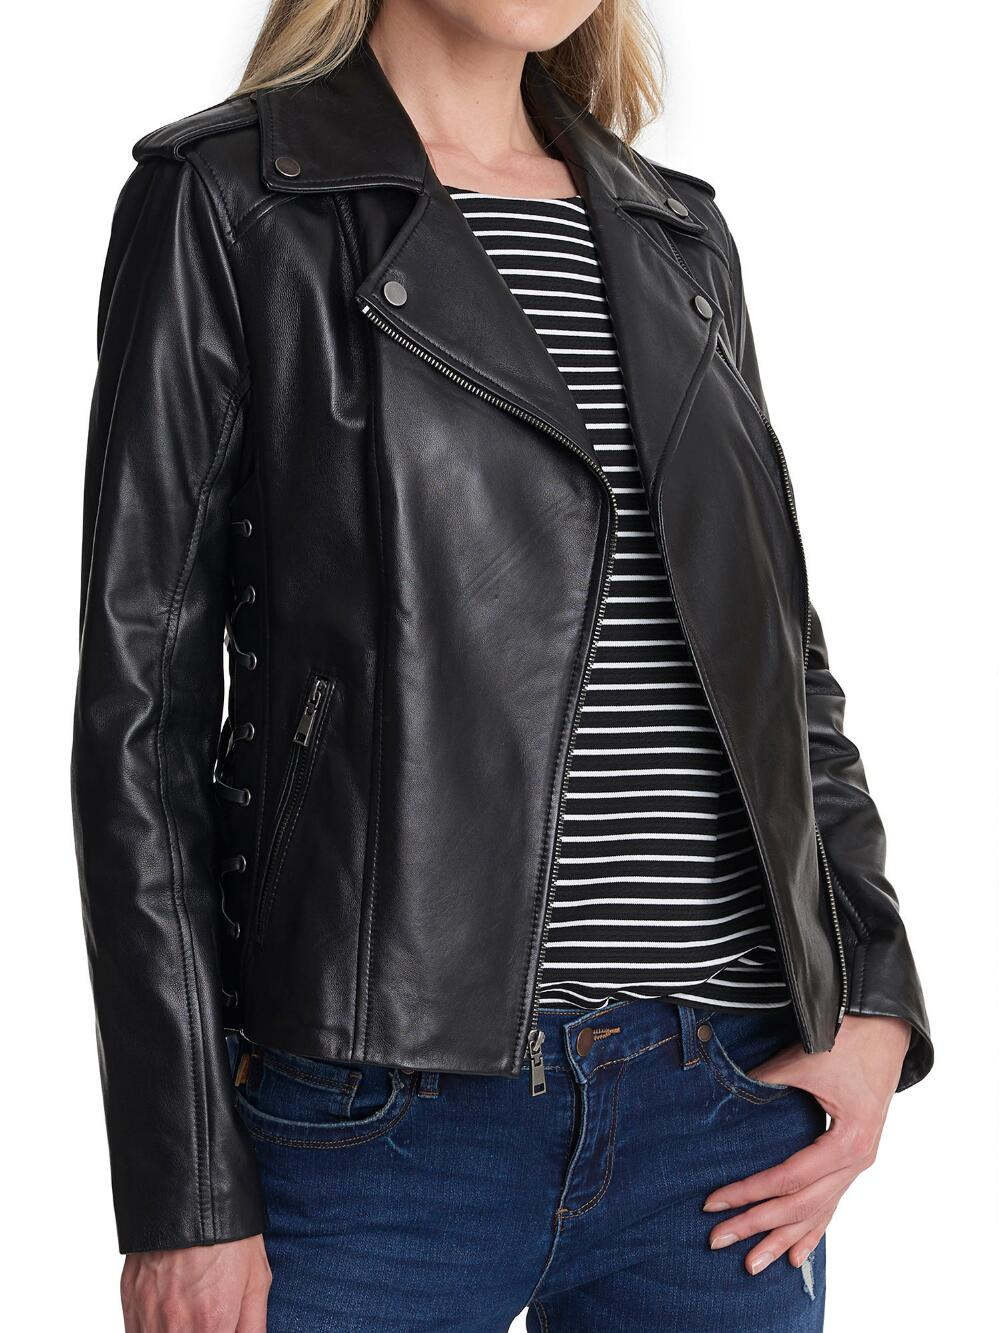 Black Leather Jacket with Side Lacing for Women